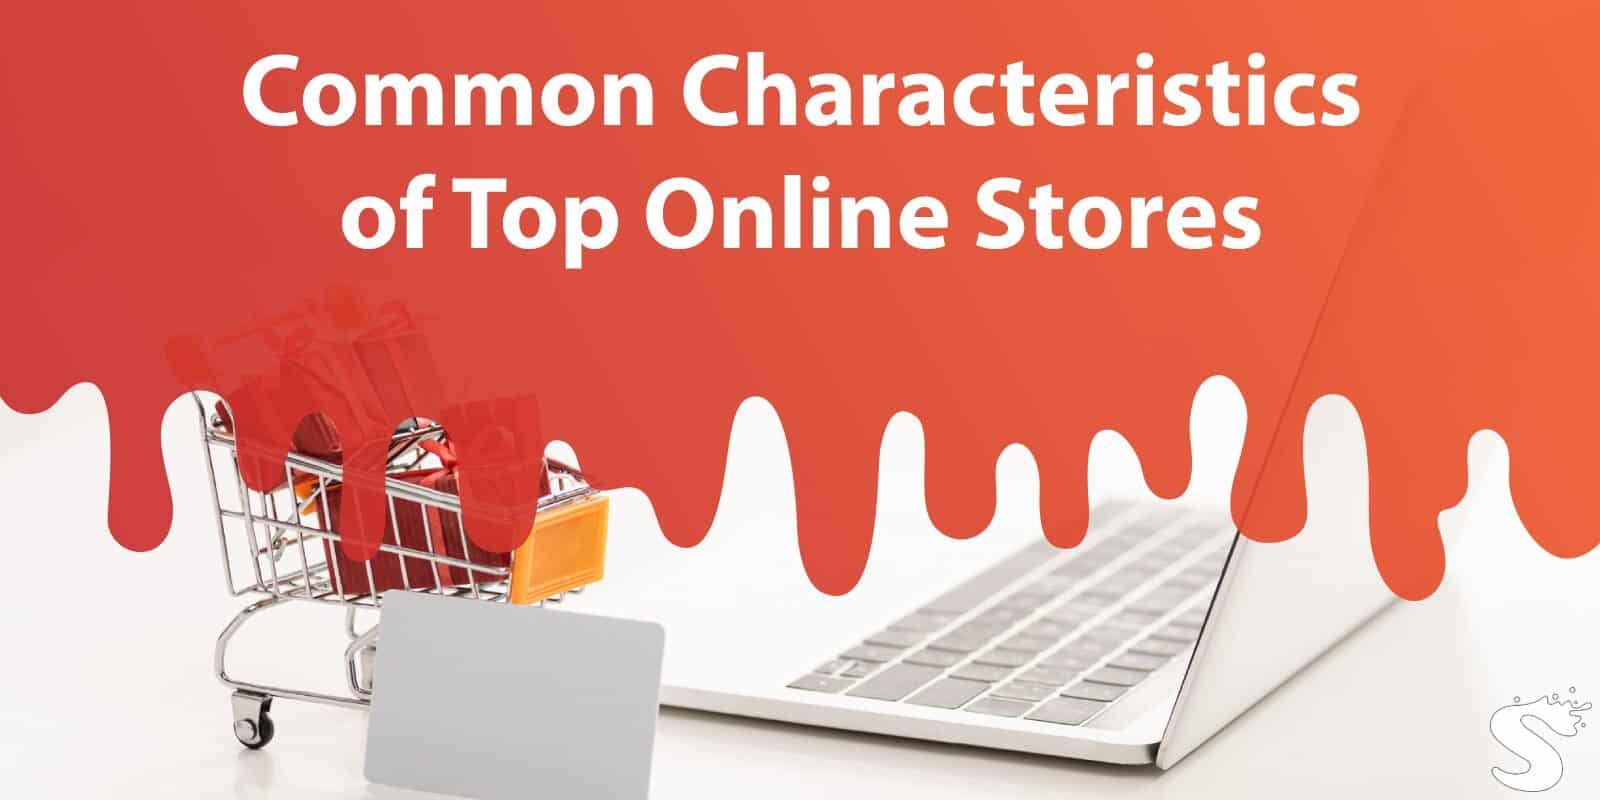 Common Characteristics of Top Online Stores: Improve Your Business by Taking Notes From the Competition